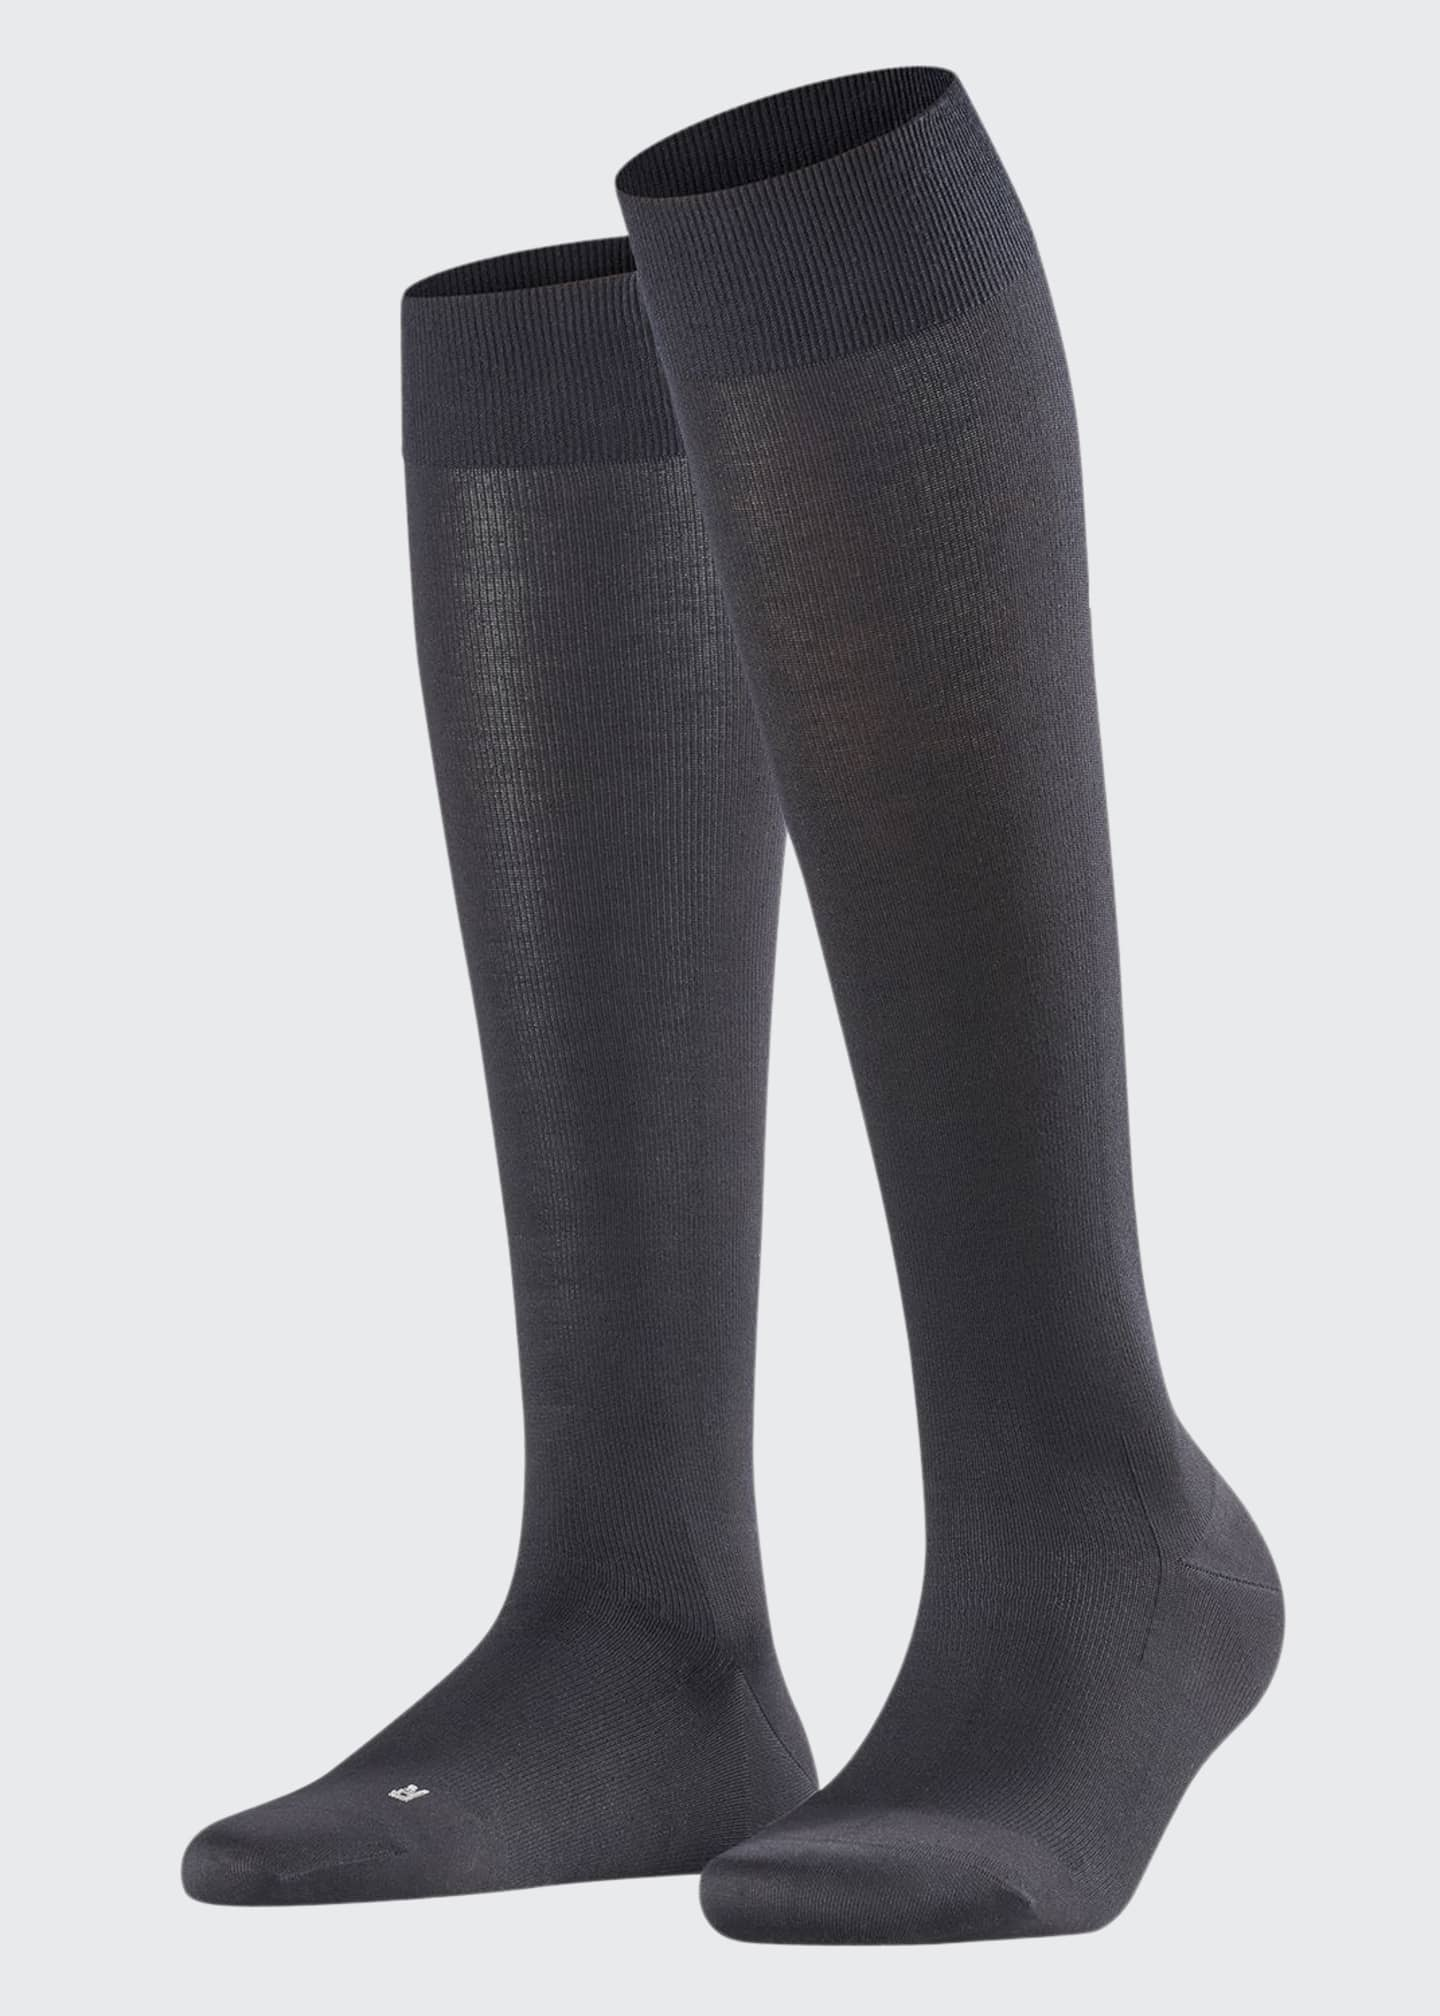 Falke Leg Energizer Knee-Length Socks